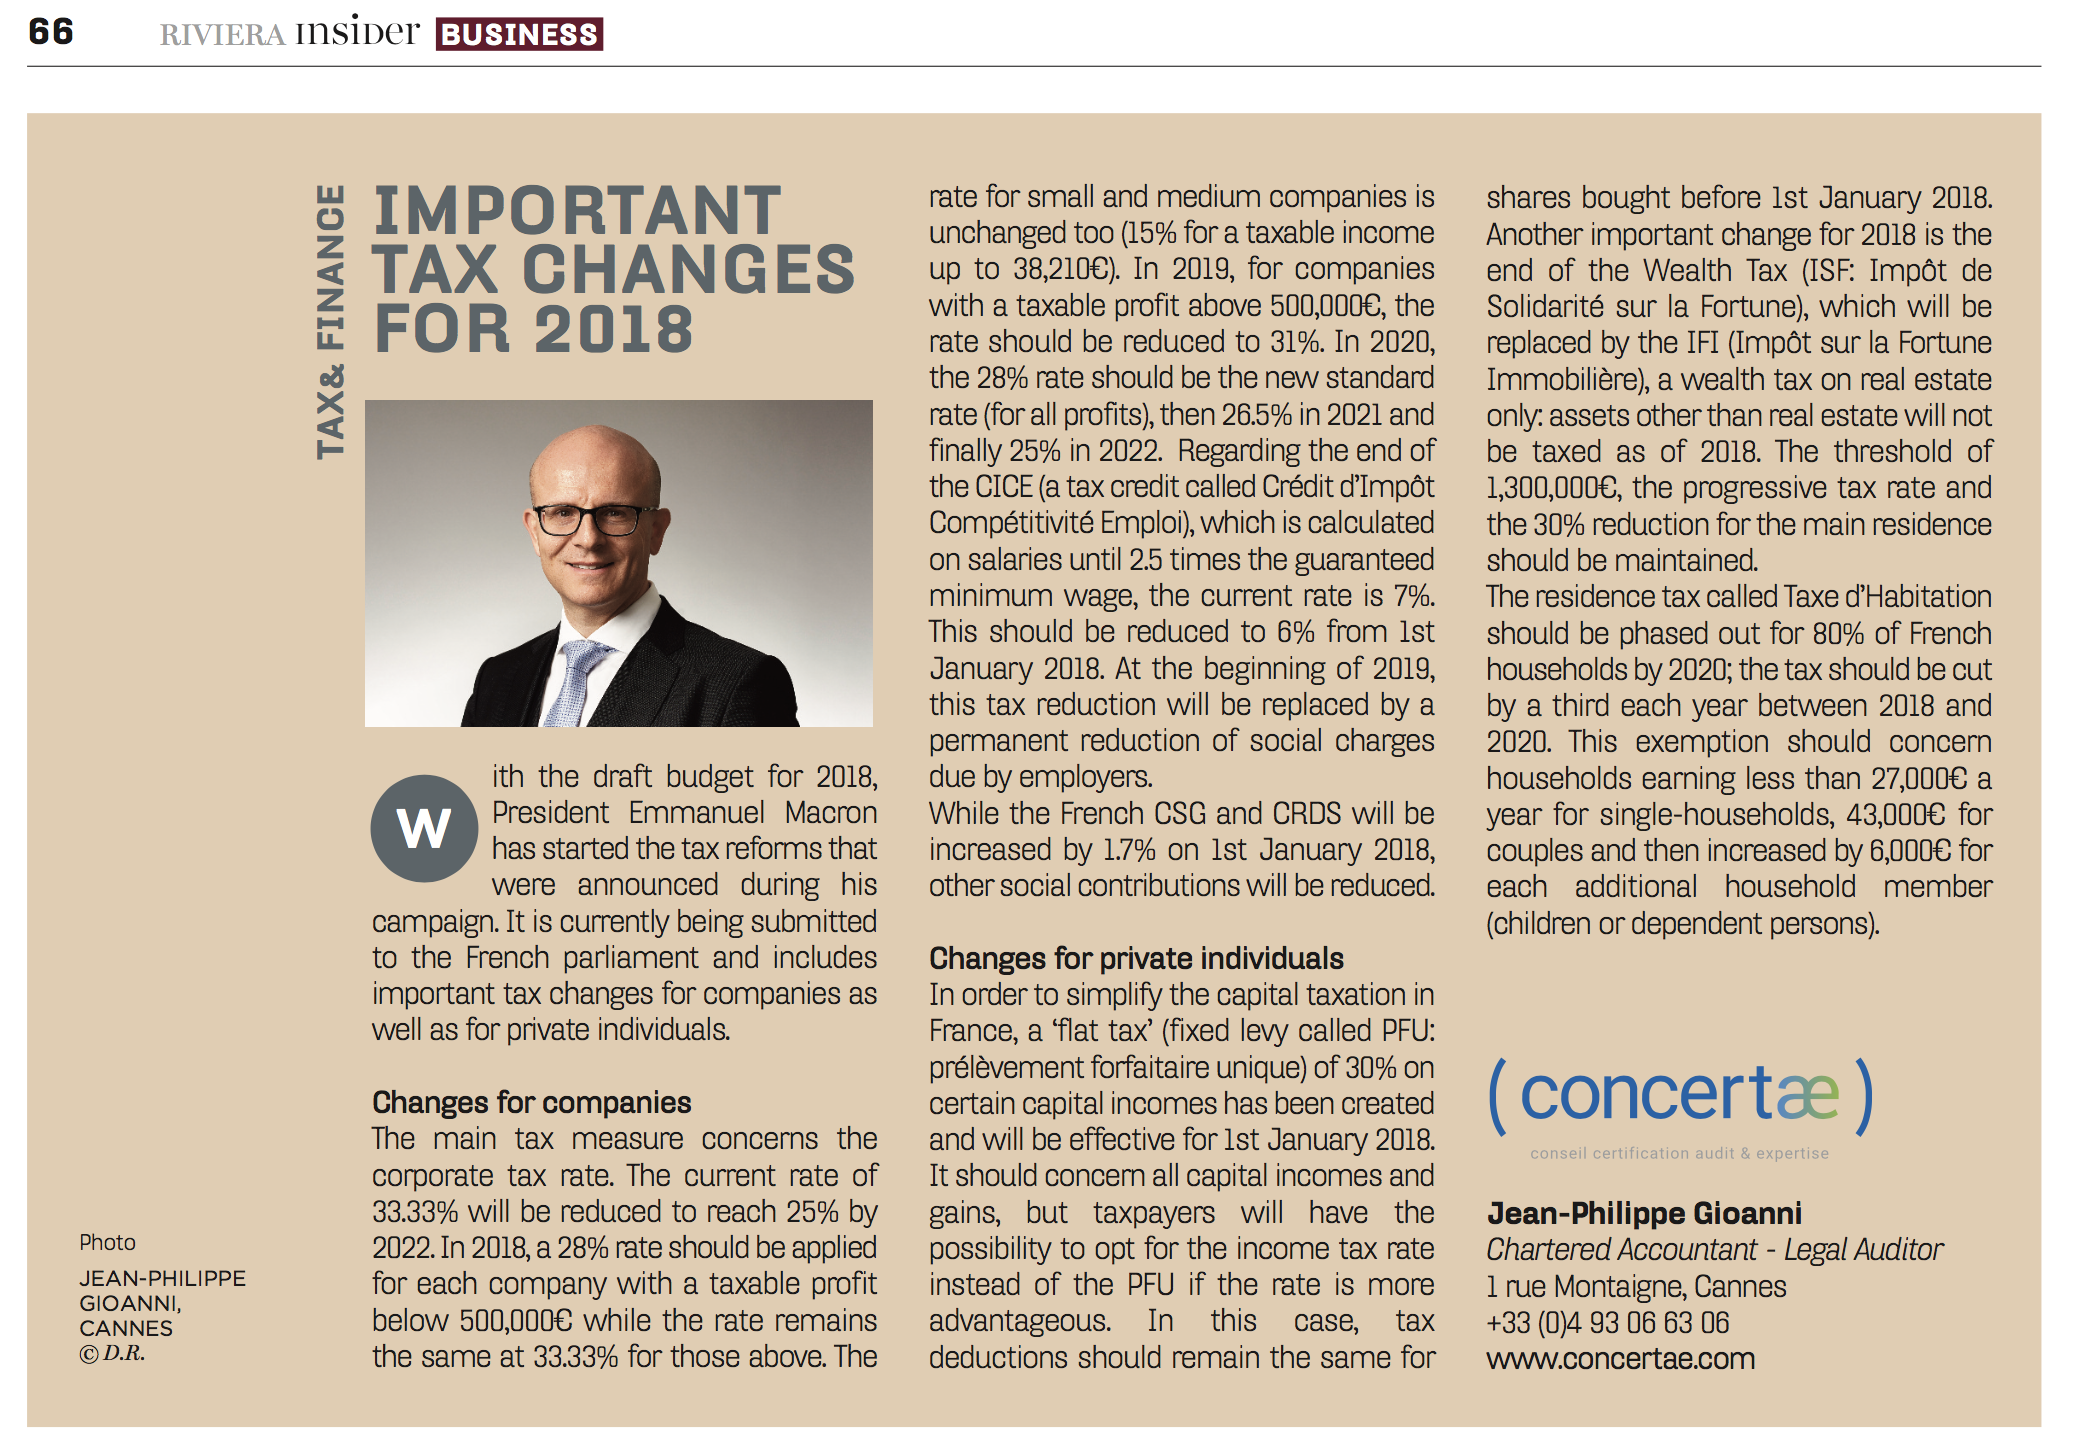 tax changes for 2018